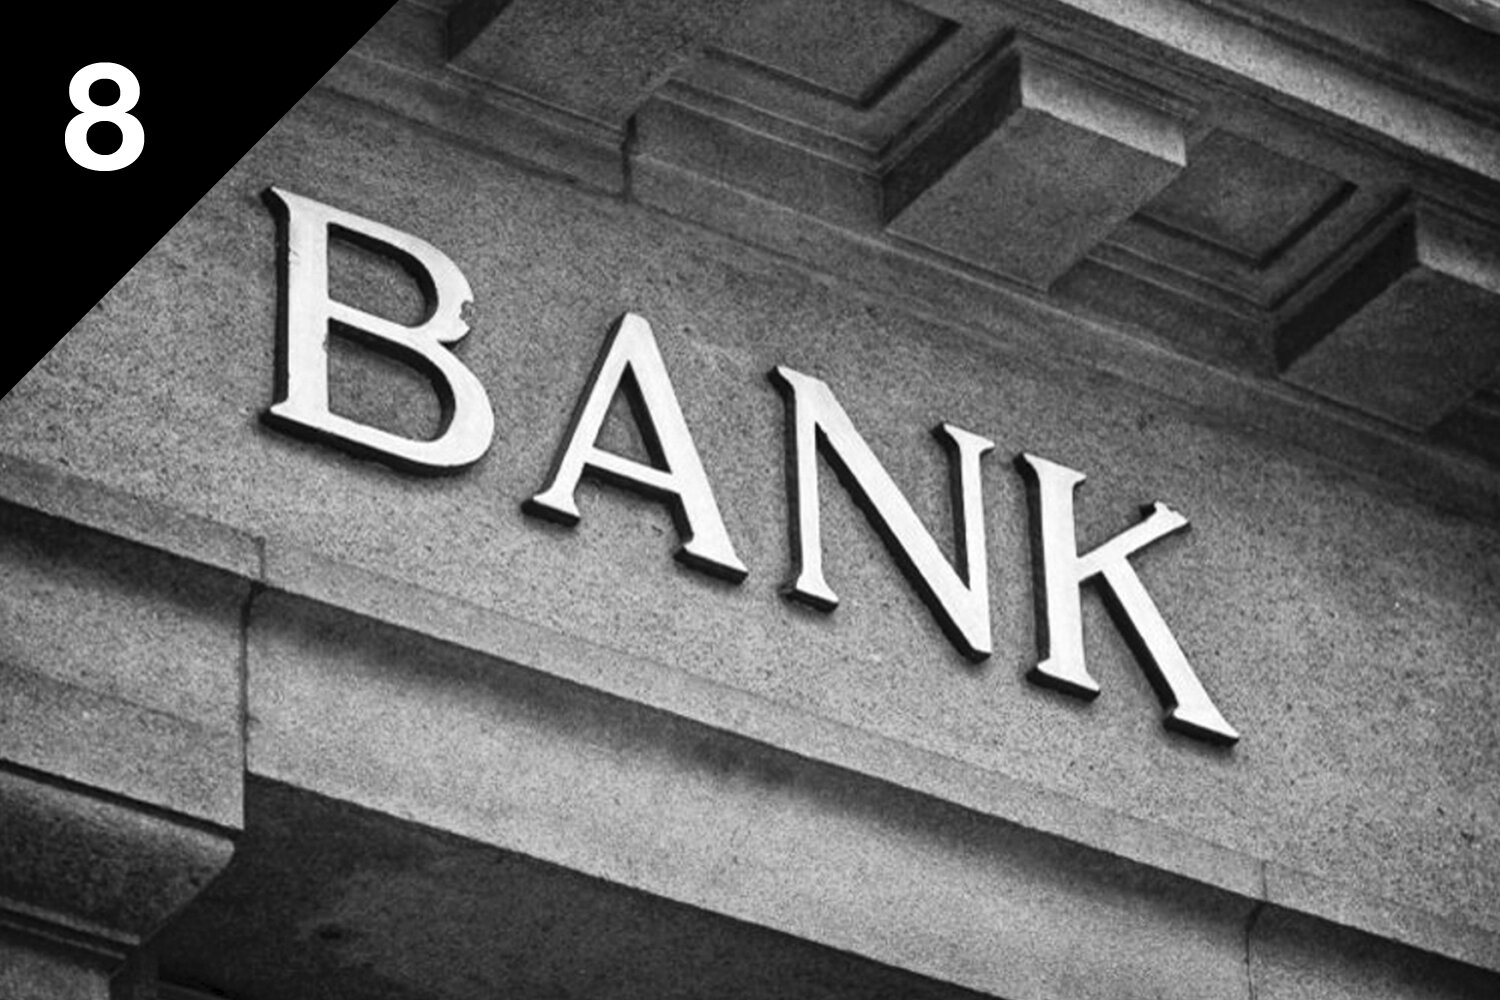 Bank account opening - We can guide our clients to open multi currency bank accounts. An account is opened usually in 7 days after the application has been submitted, which can be done fully remotely. There are no guarantees about positive results, but negative answers are rare if you are not involved in a high risk business.